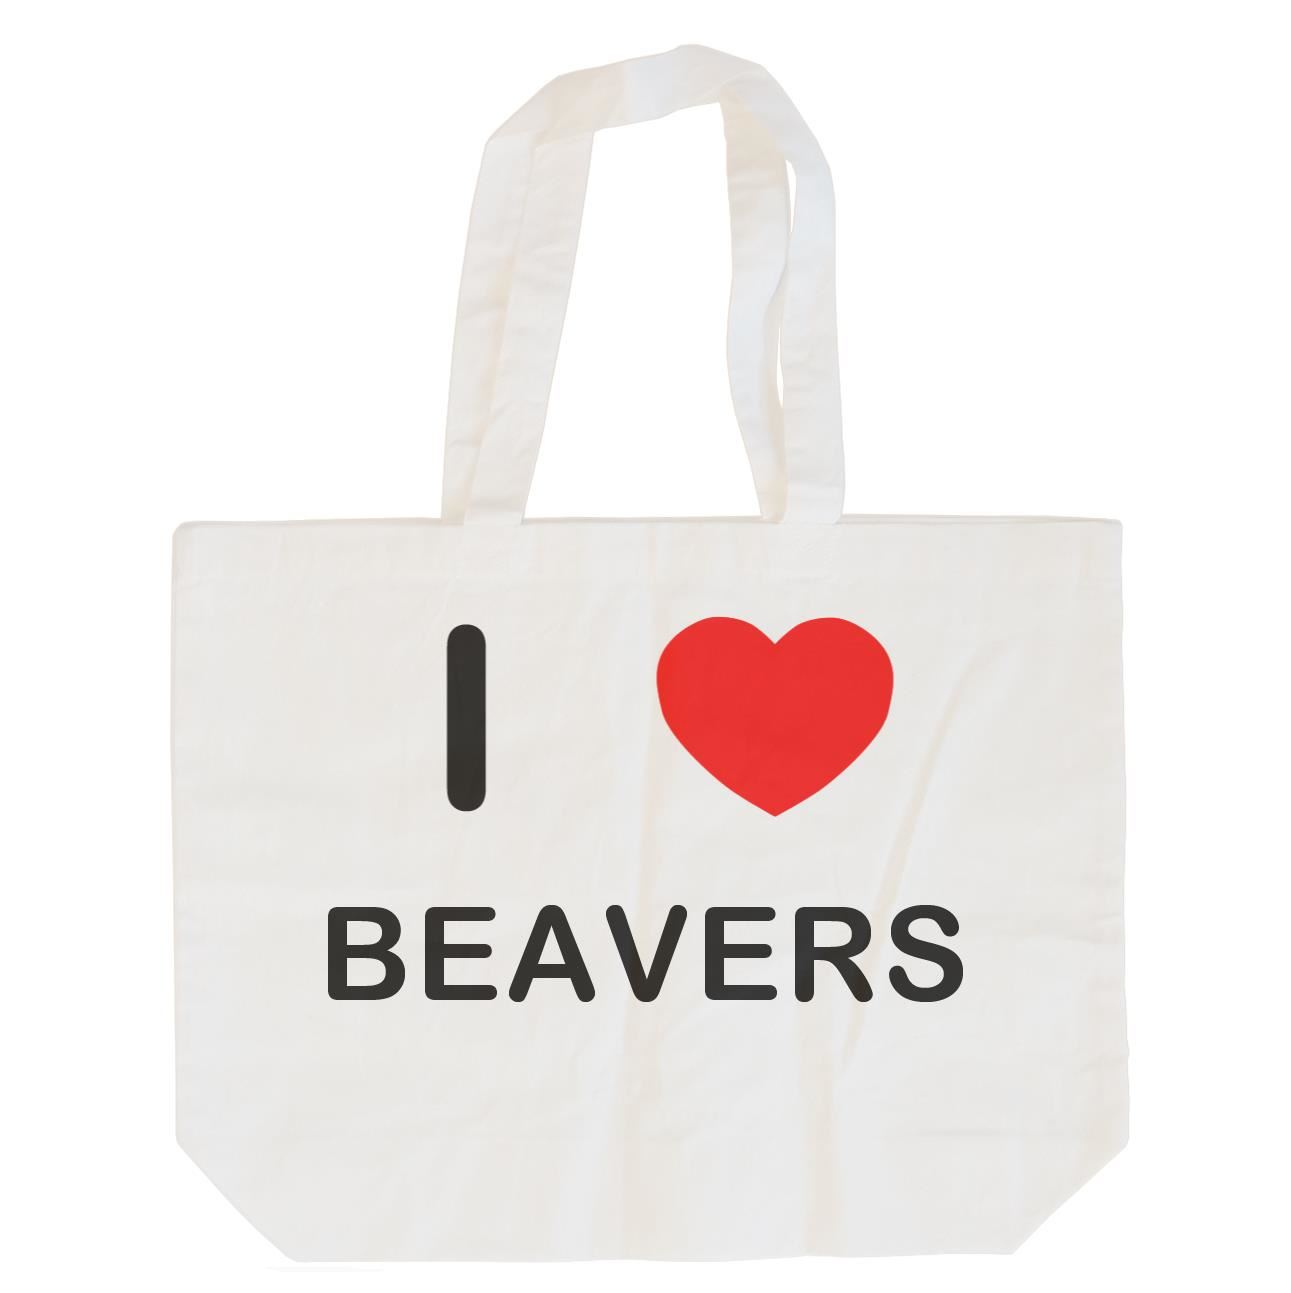 I Love Beavers - Cotton Bag | Size choice Tote, Shopper or Sling